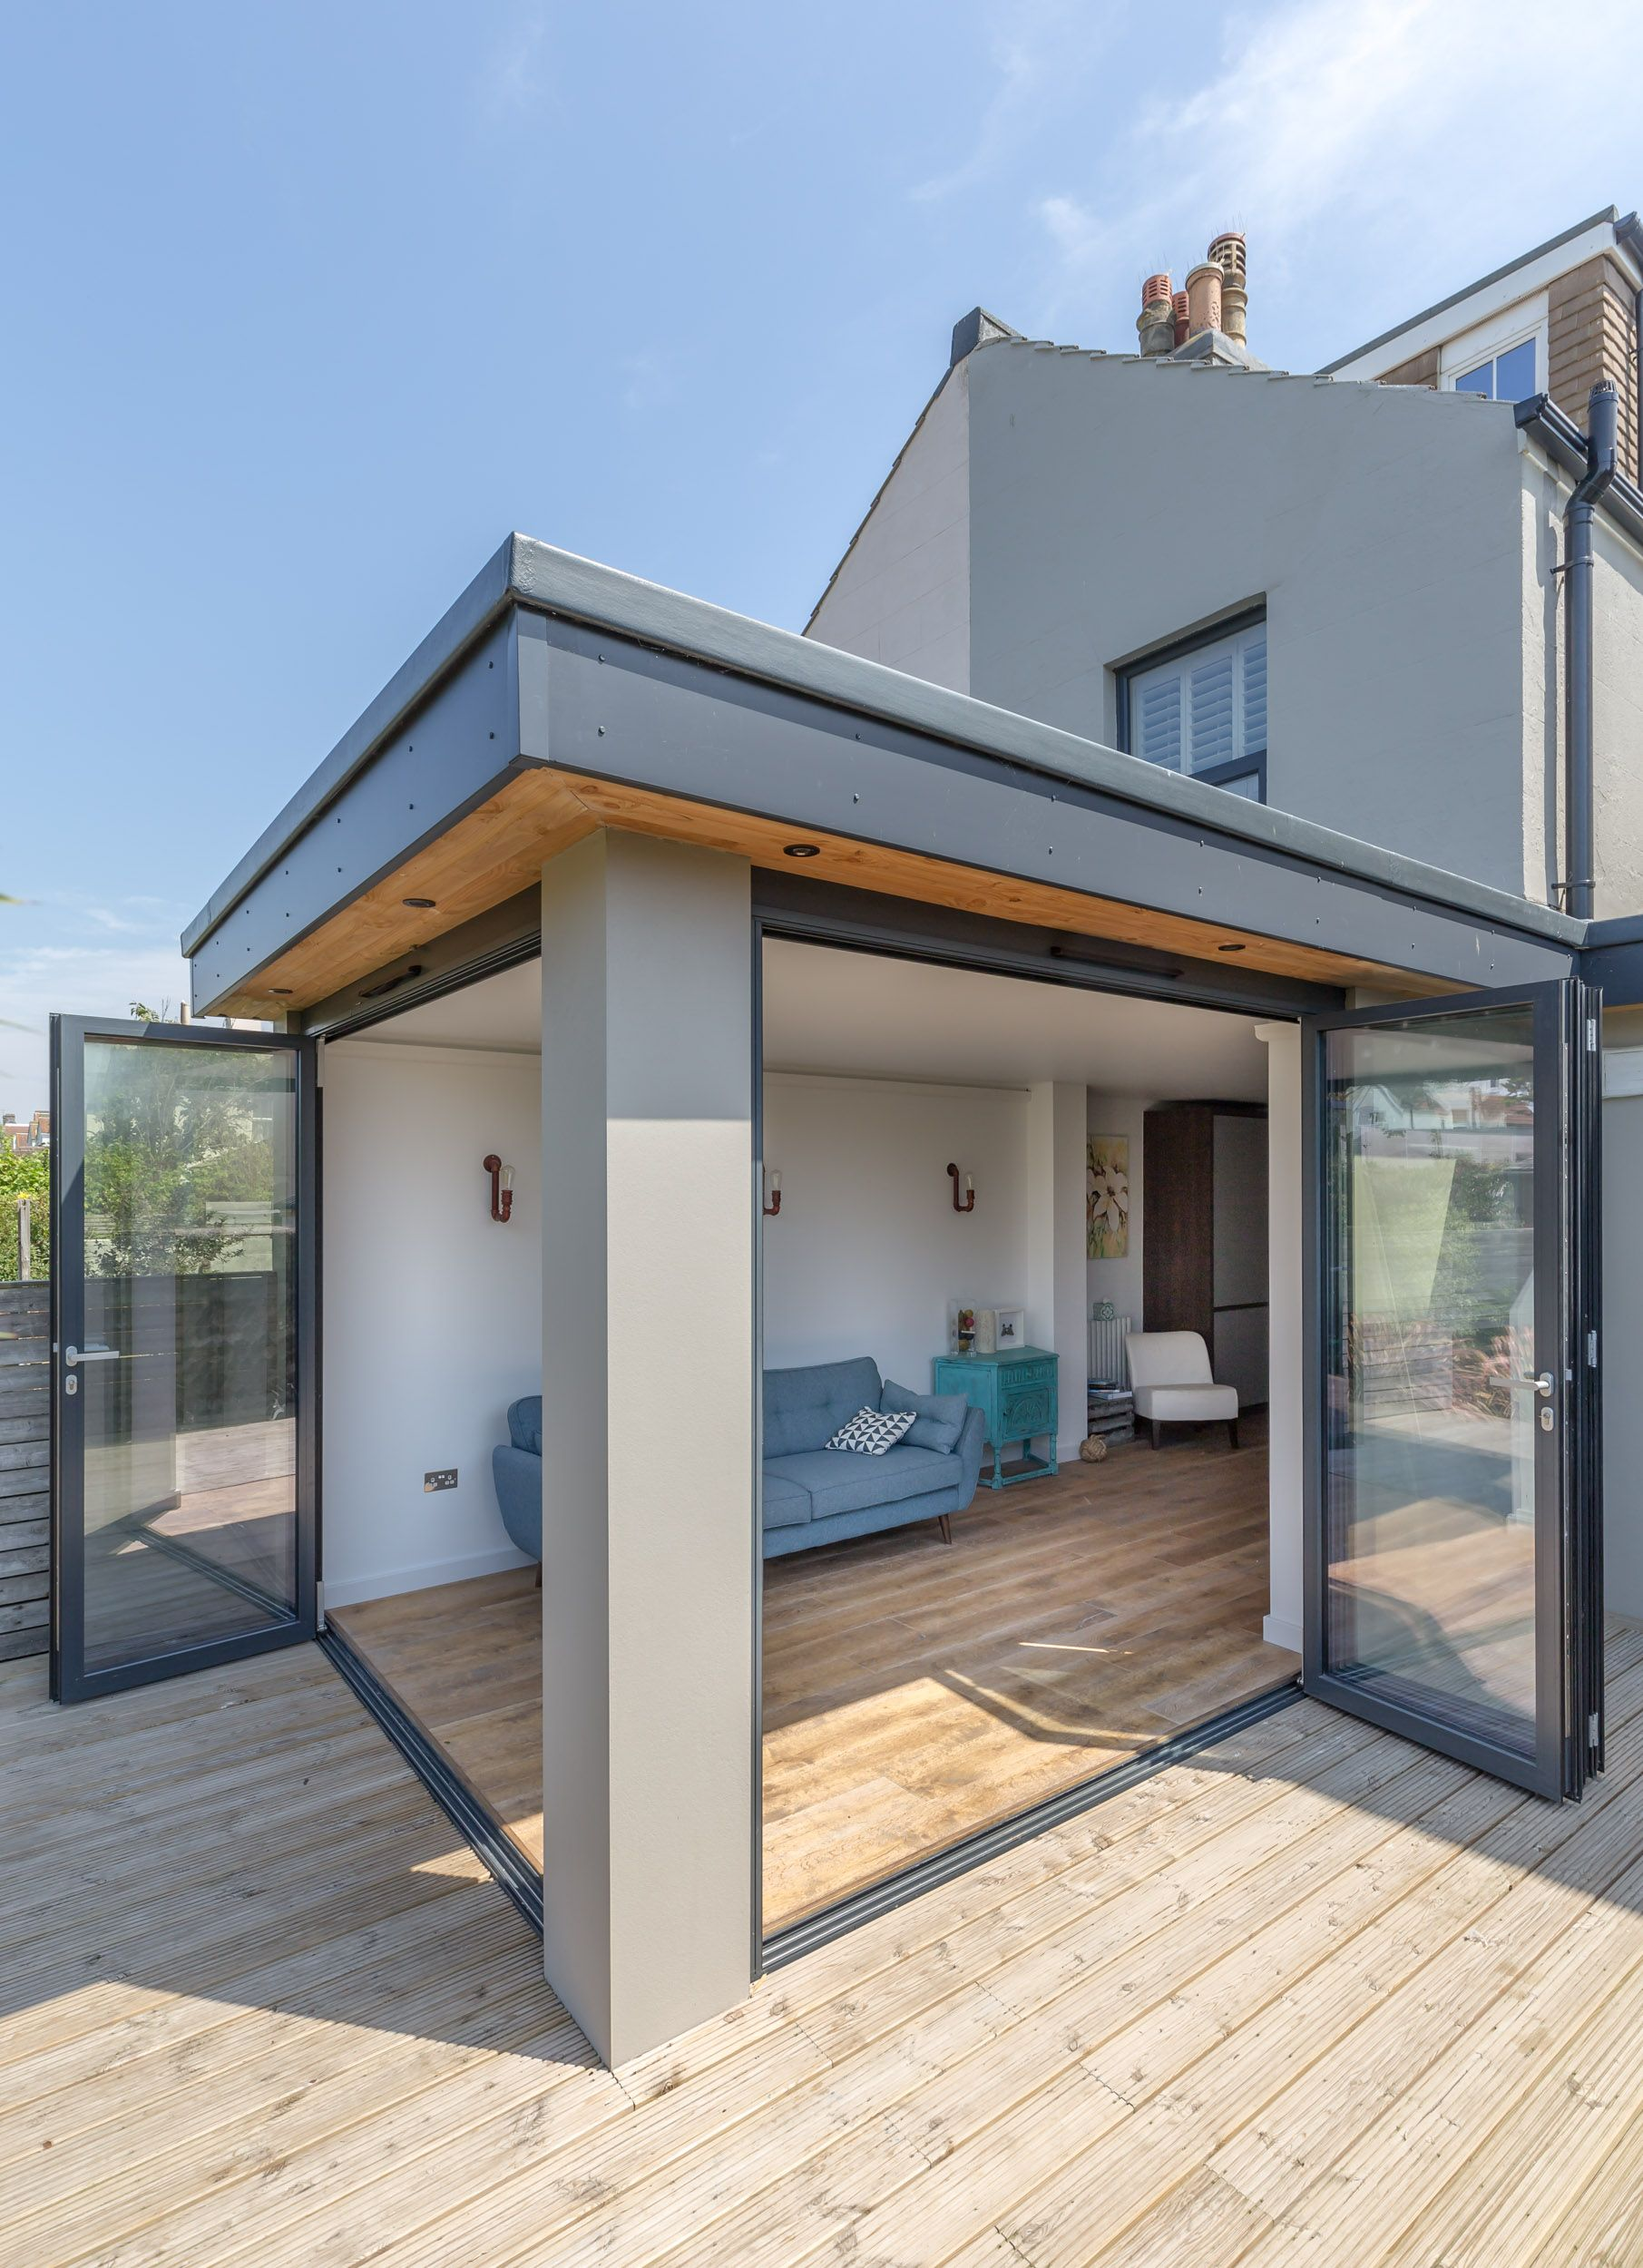 Image Result For Corner Opening Kitchen Extension Garden Room Extensions House Extension Design Flat Roof Design